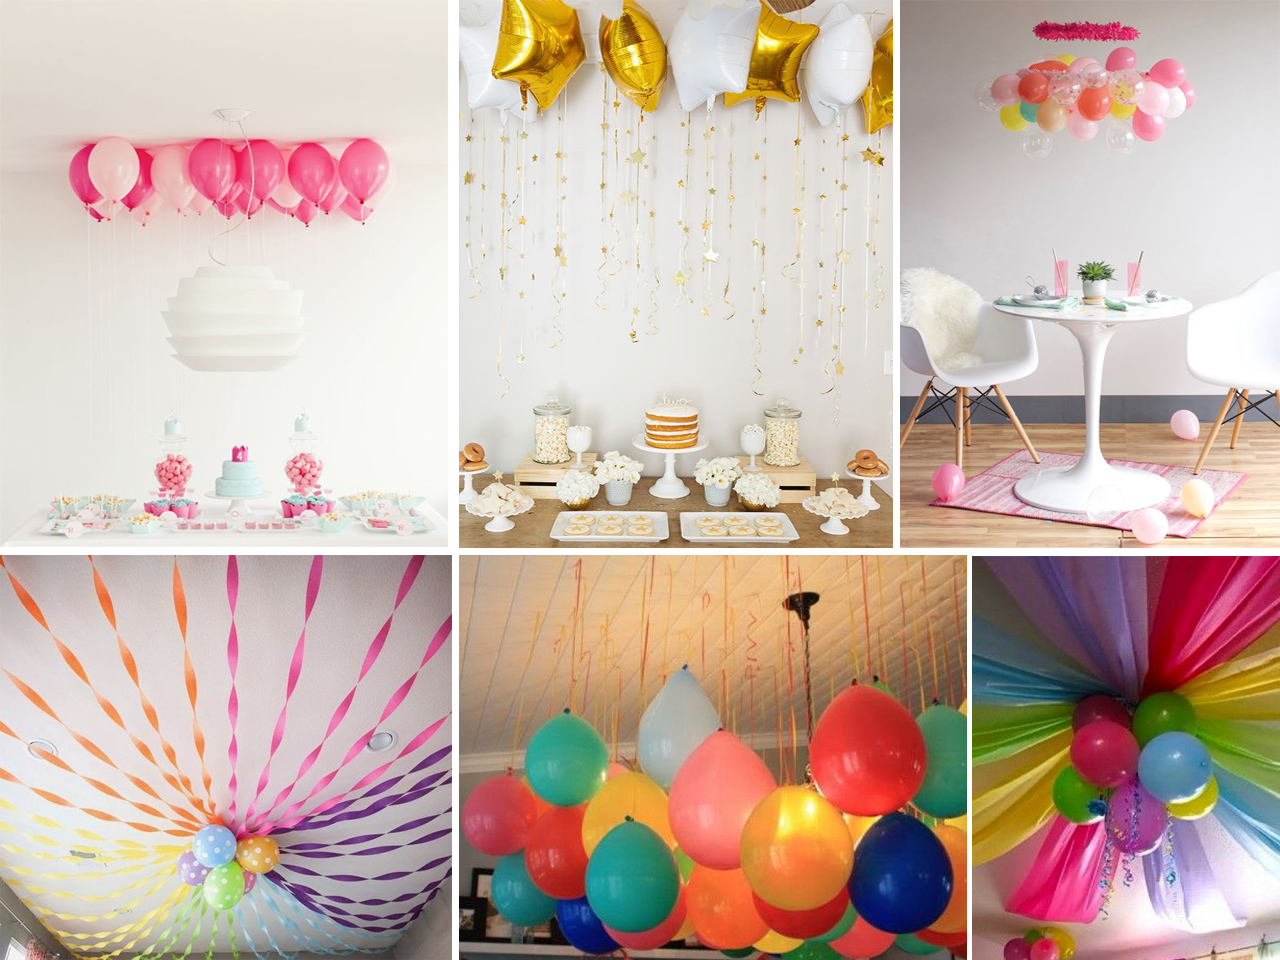 Descubre c mo decorar con globos con estas fant sticas ideas for Para adornar fotos